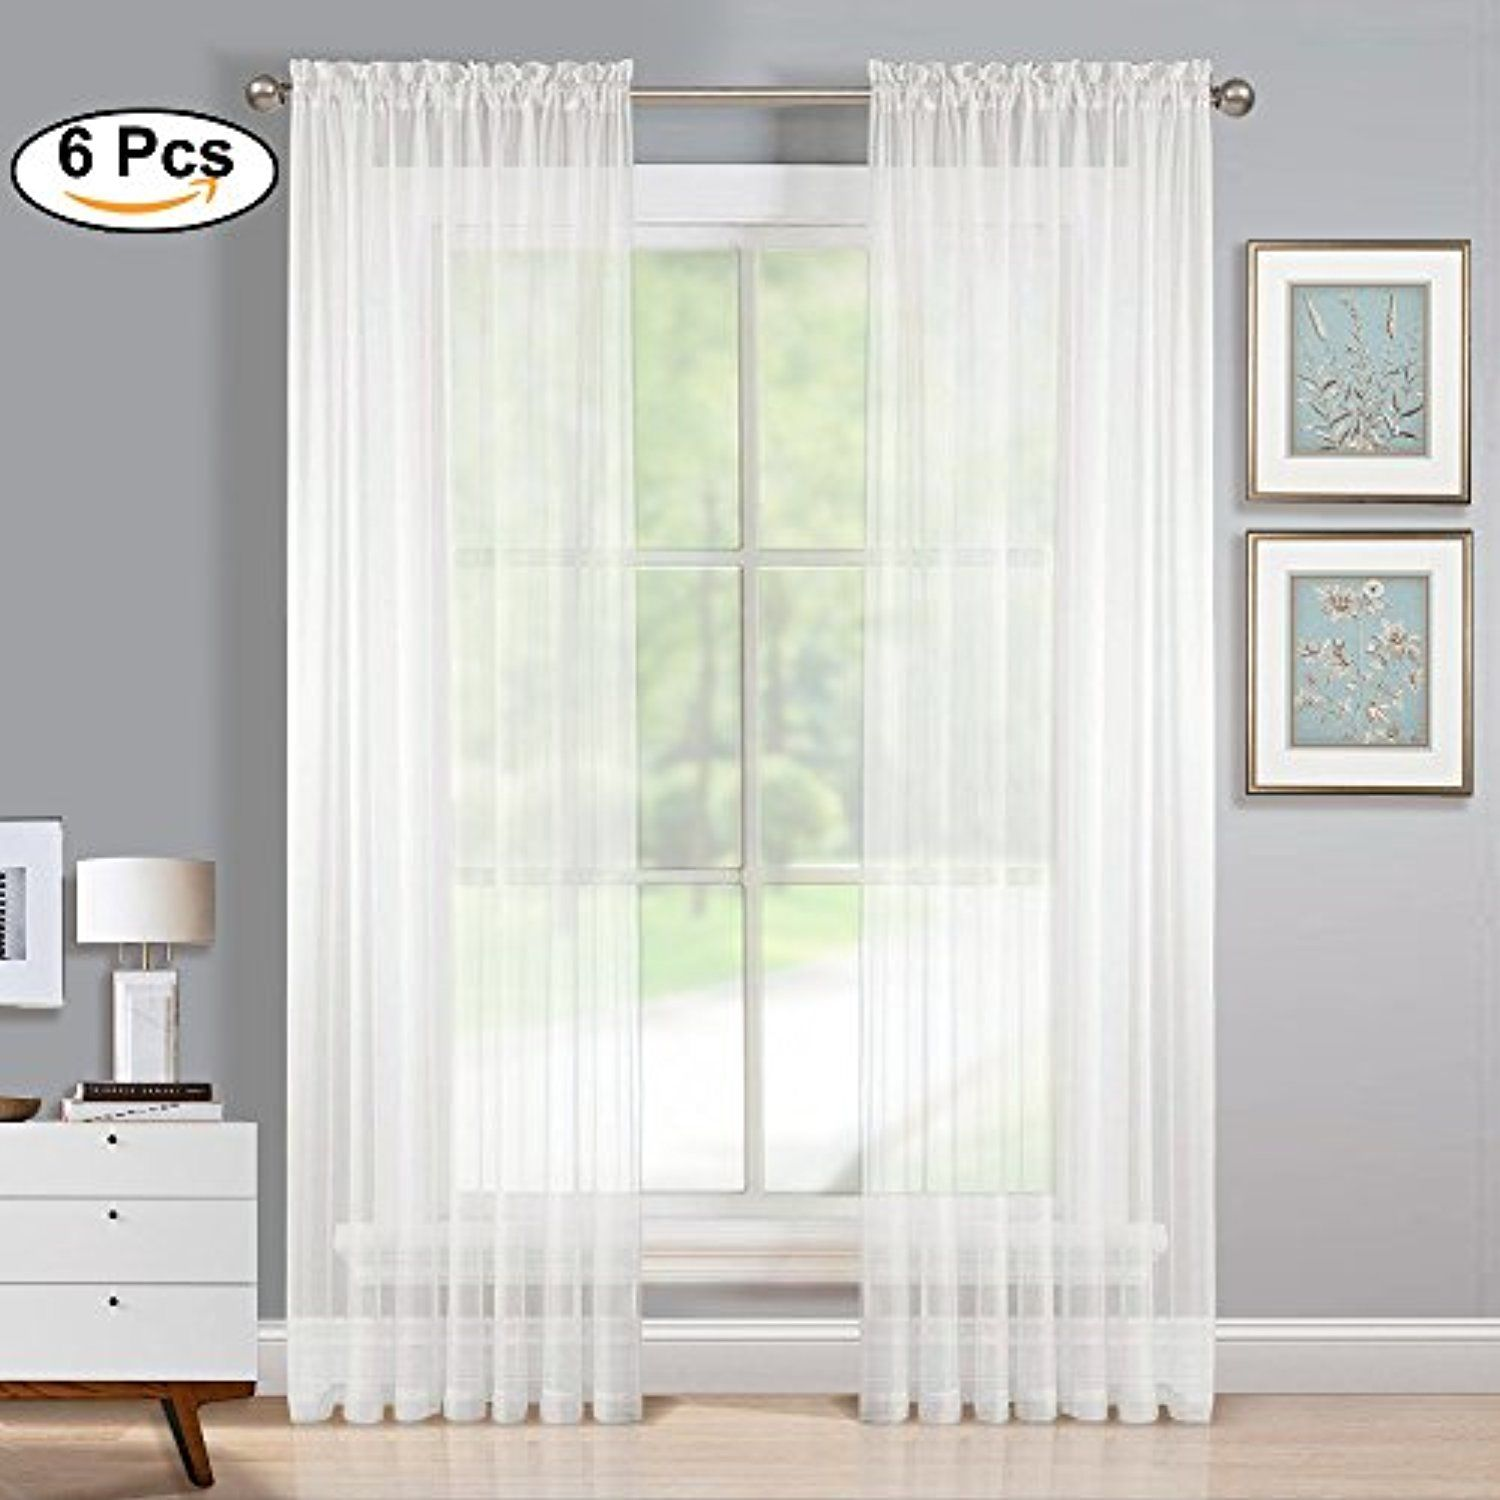 White Sheer Voile Window Curtains - Home Deco Elegant Rod Pocket